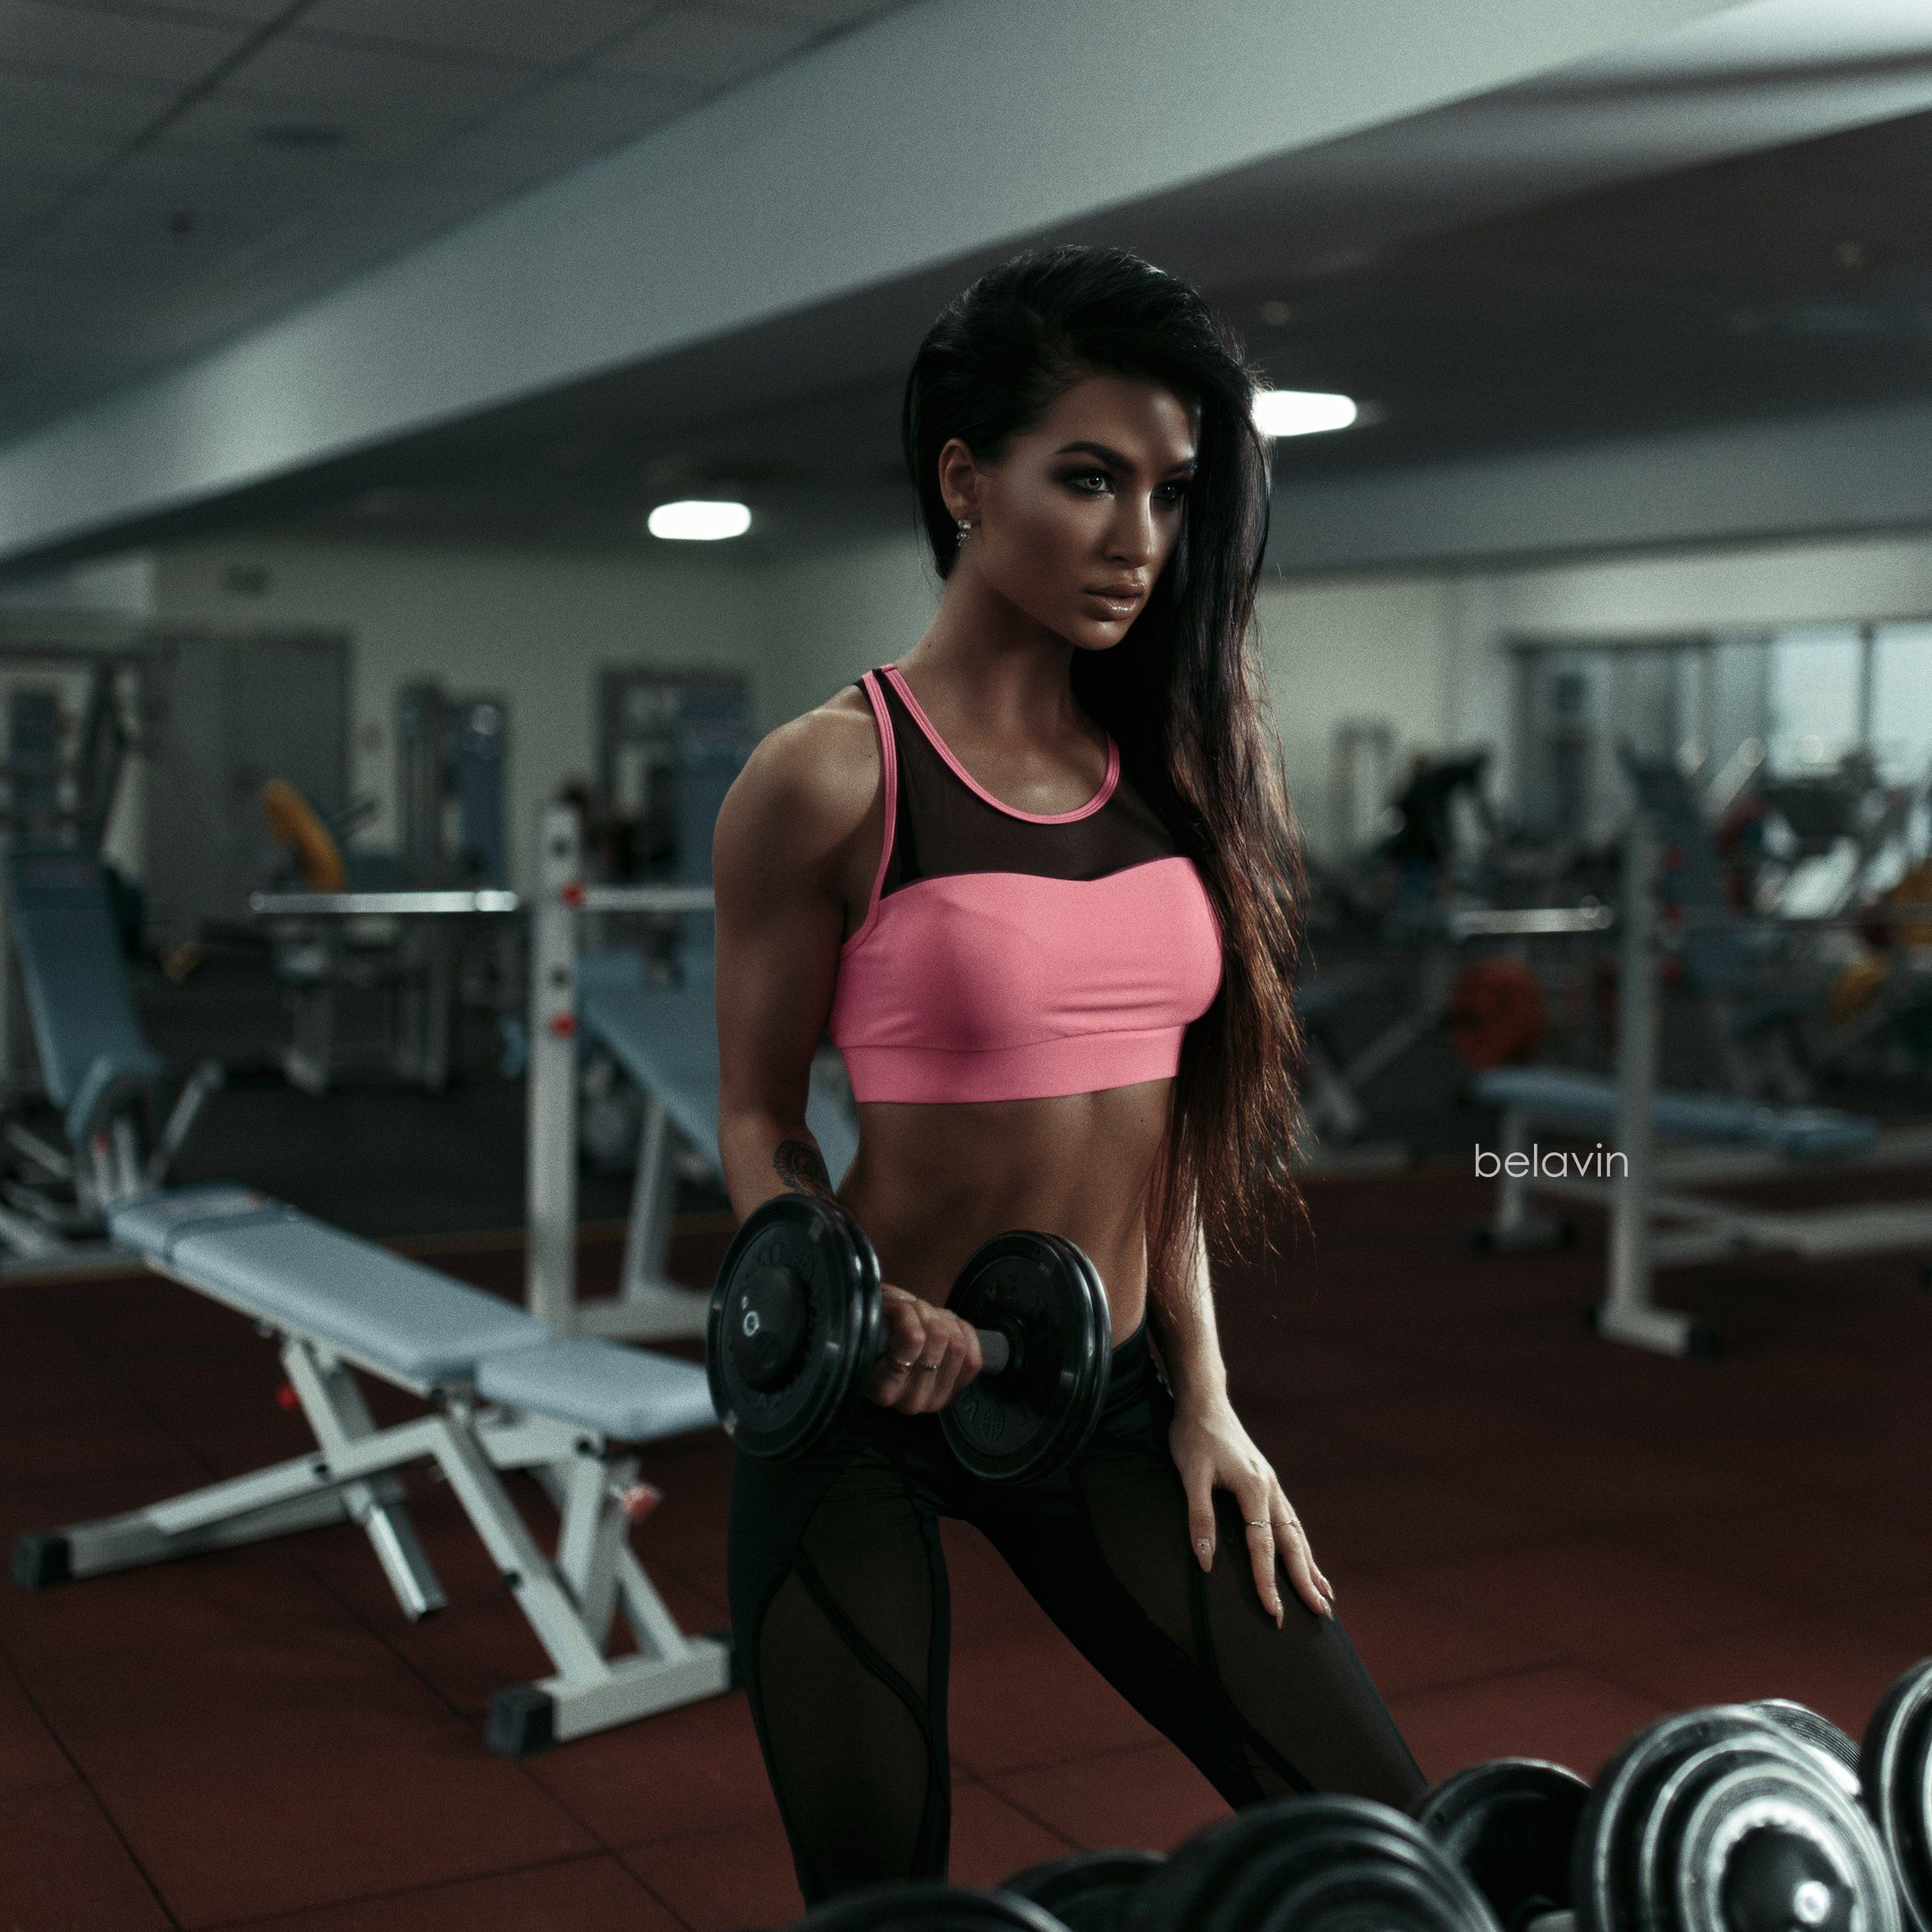 Fitness Babes - Fitness, Sexy